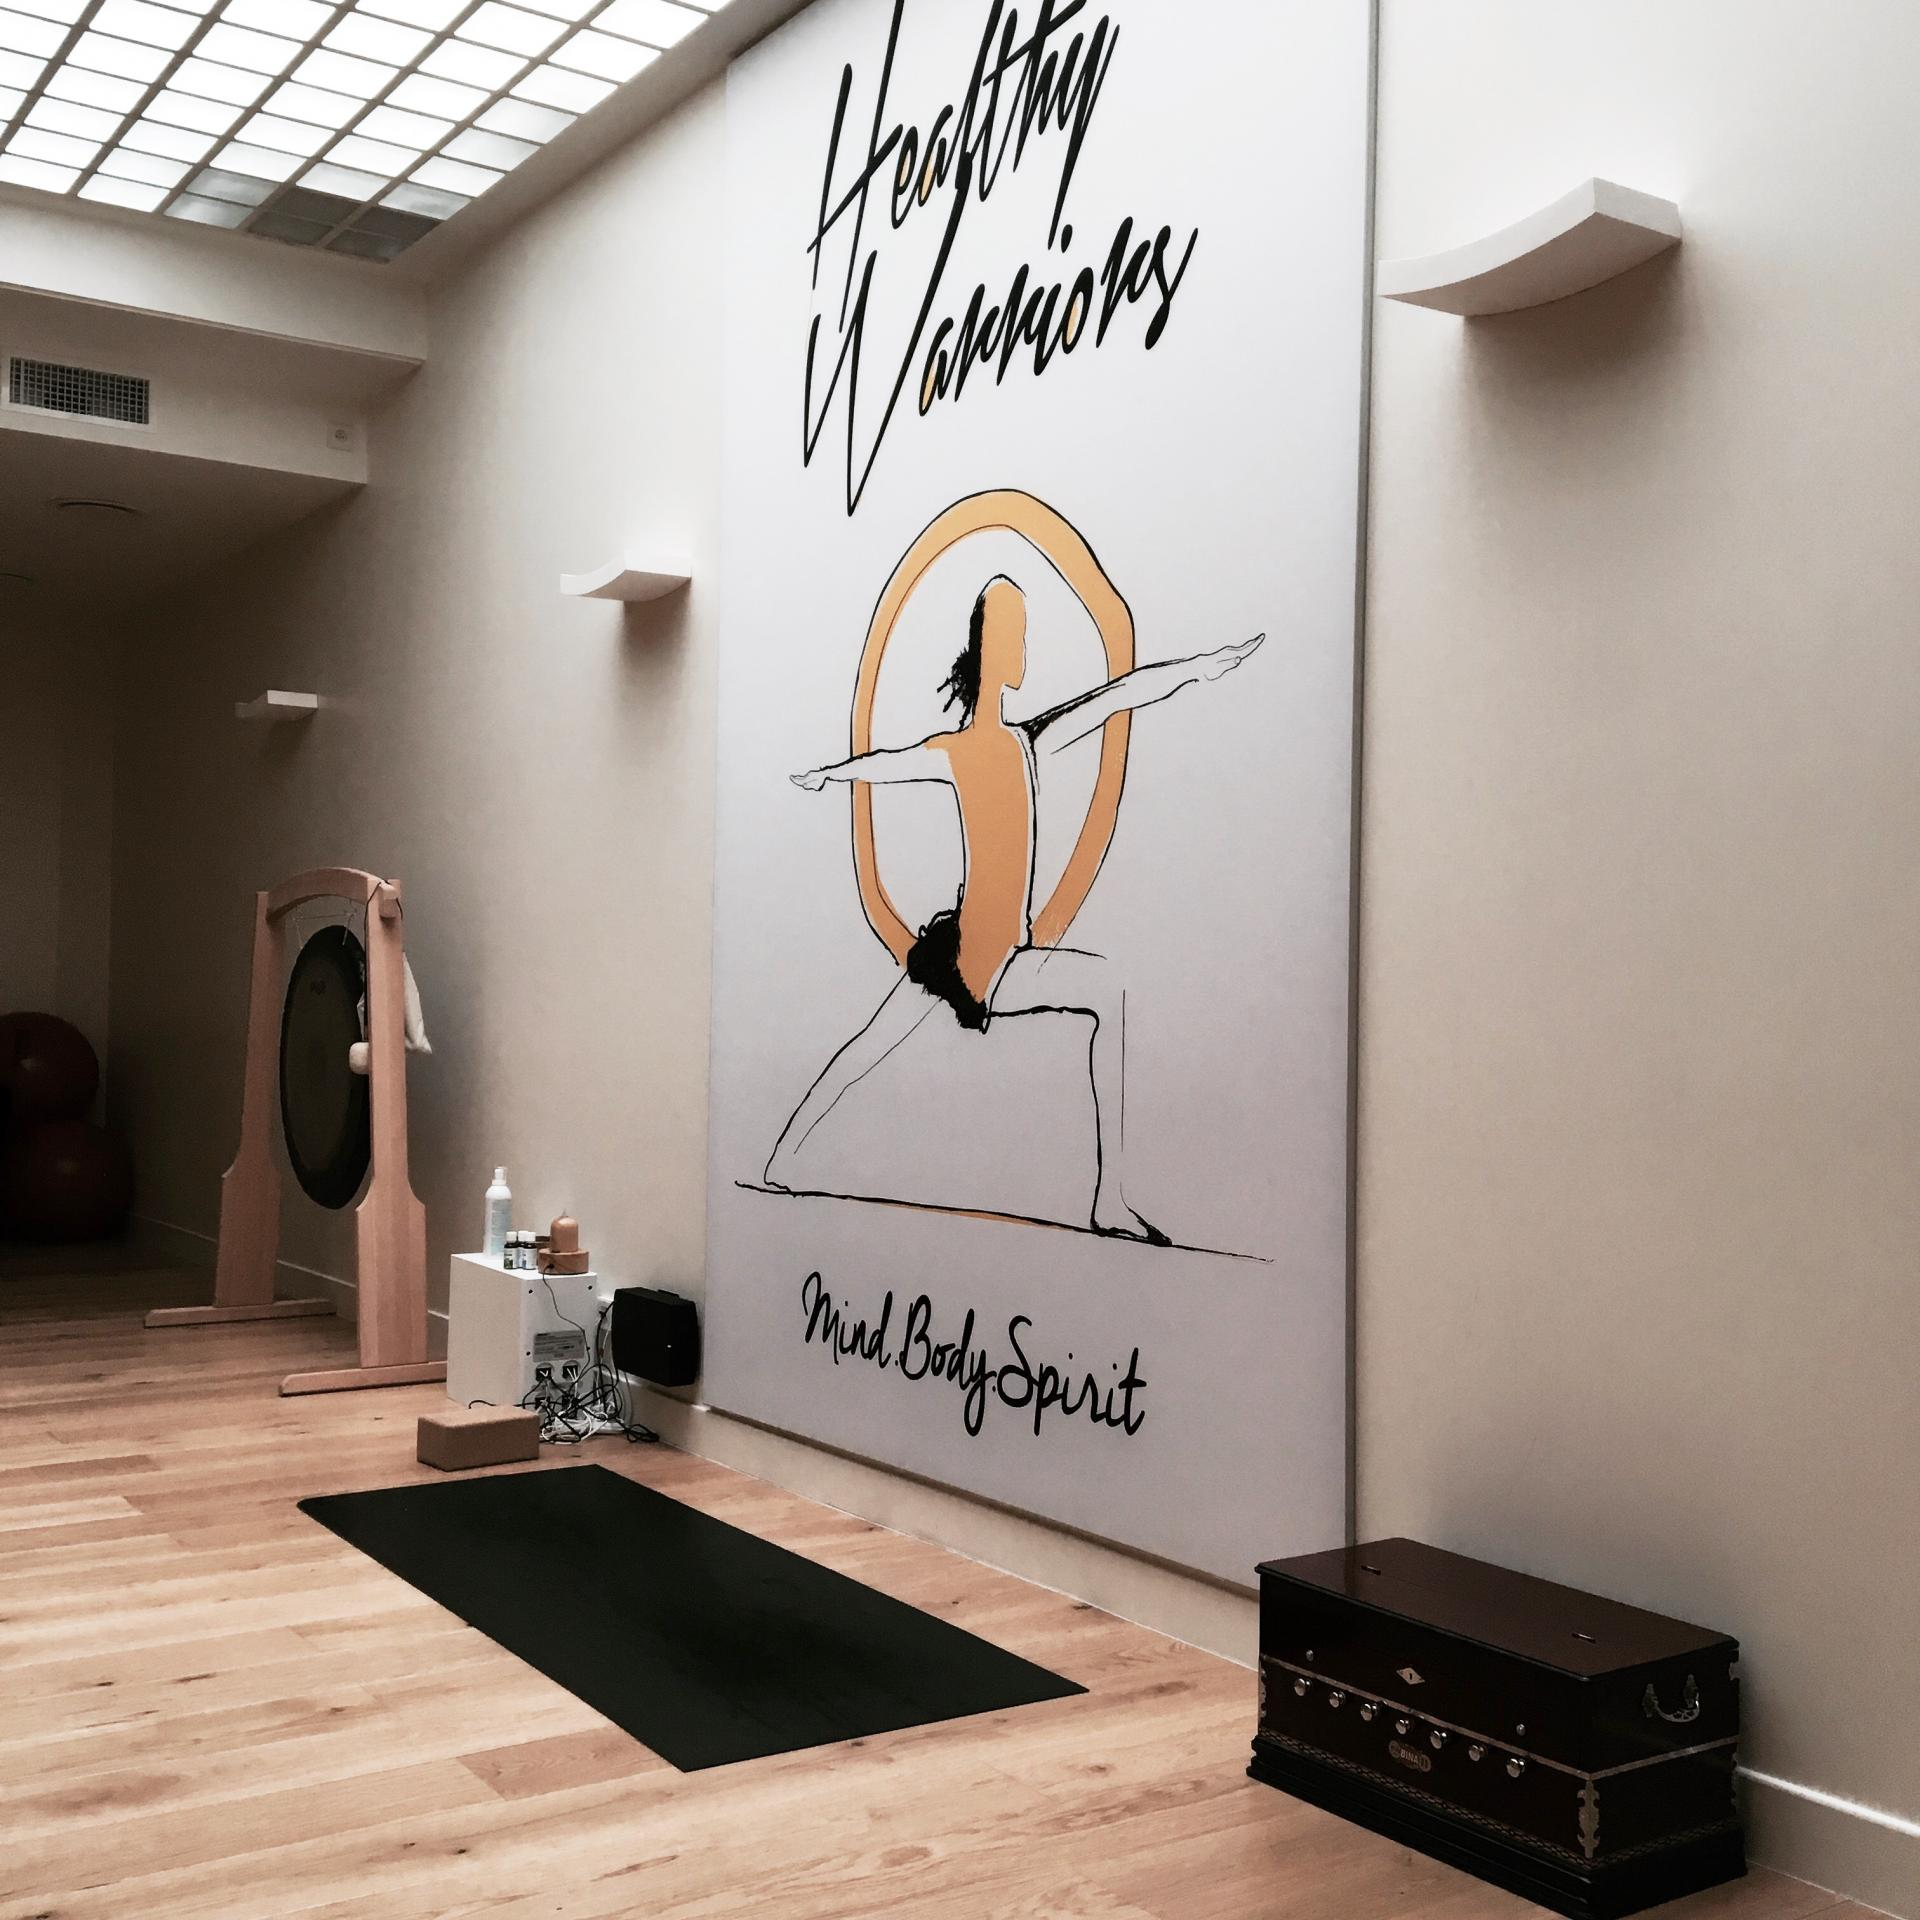 Sharefashion - SportTour, j'ai testé les salles de sport à Paris - Healthy warrior